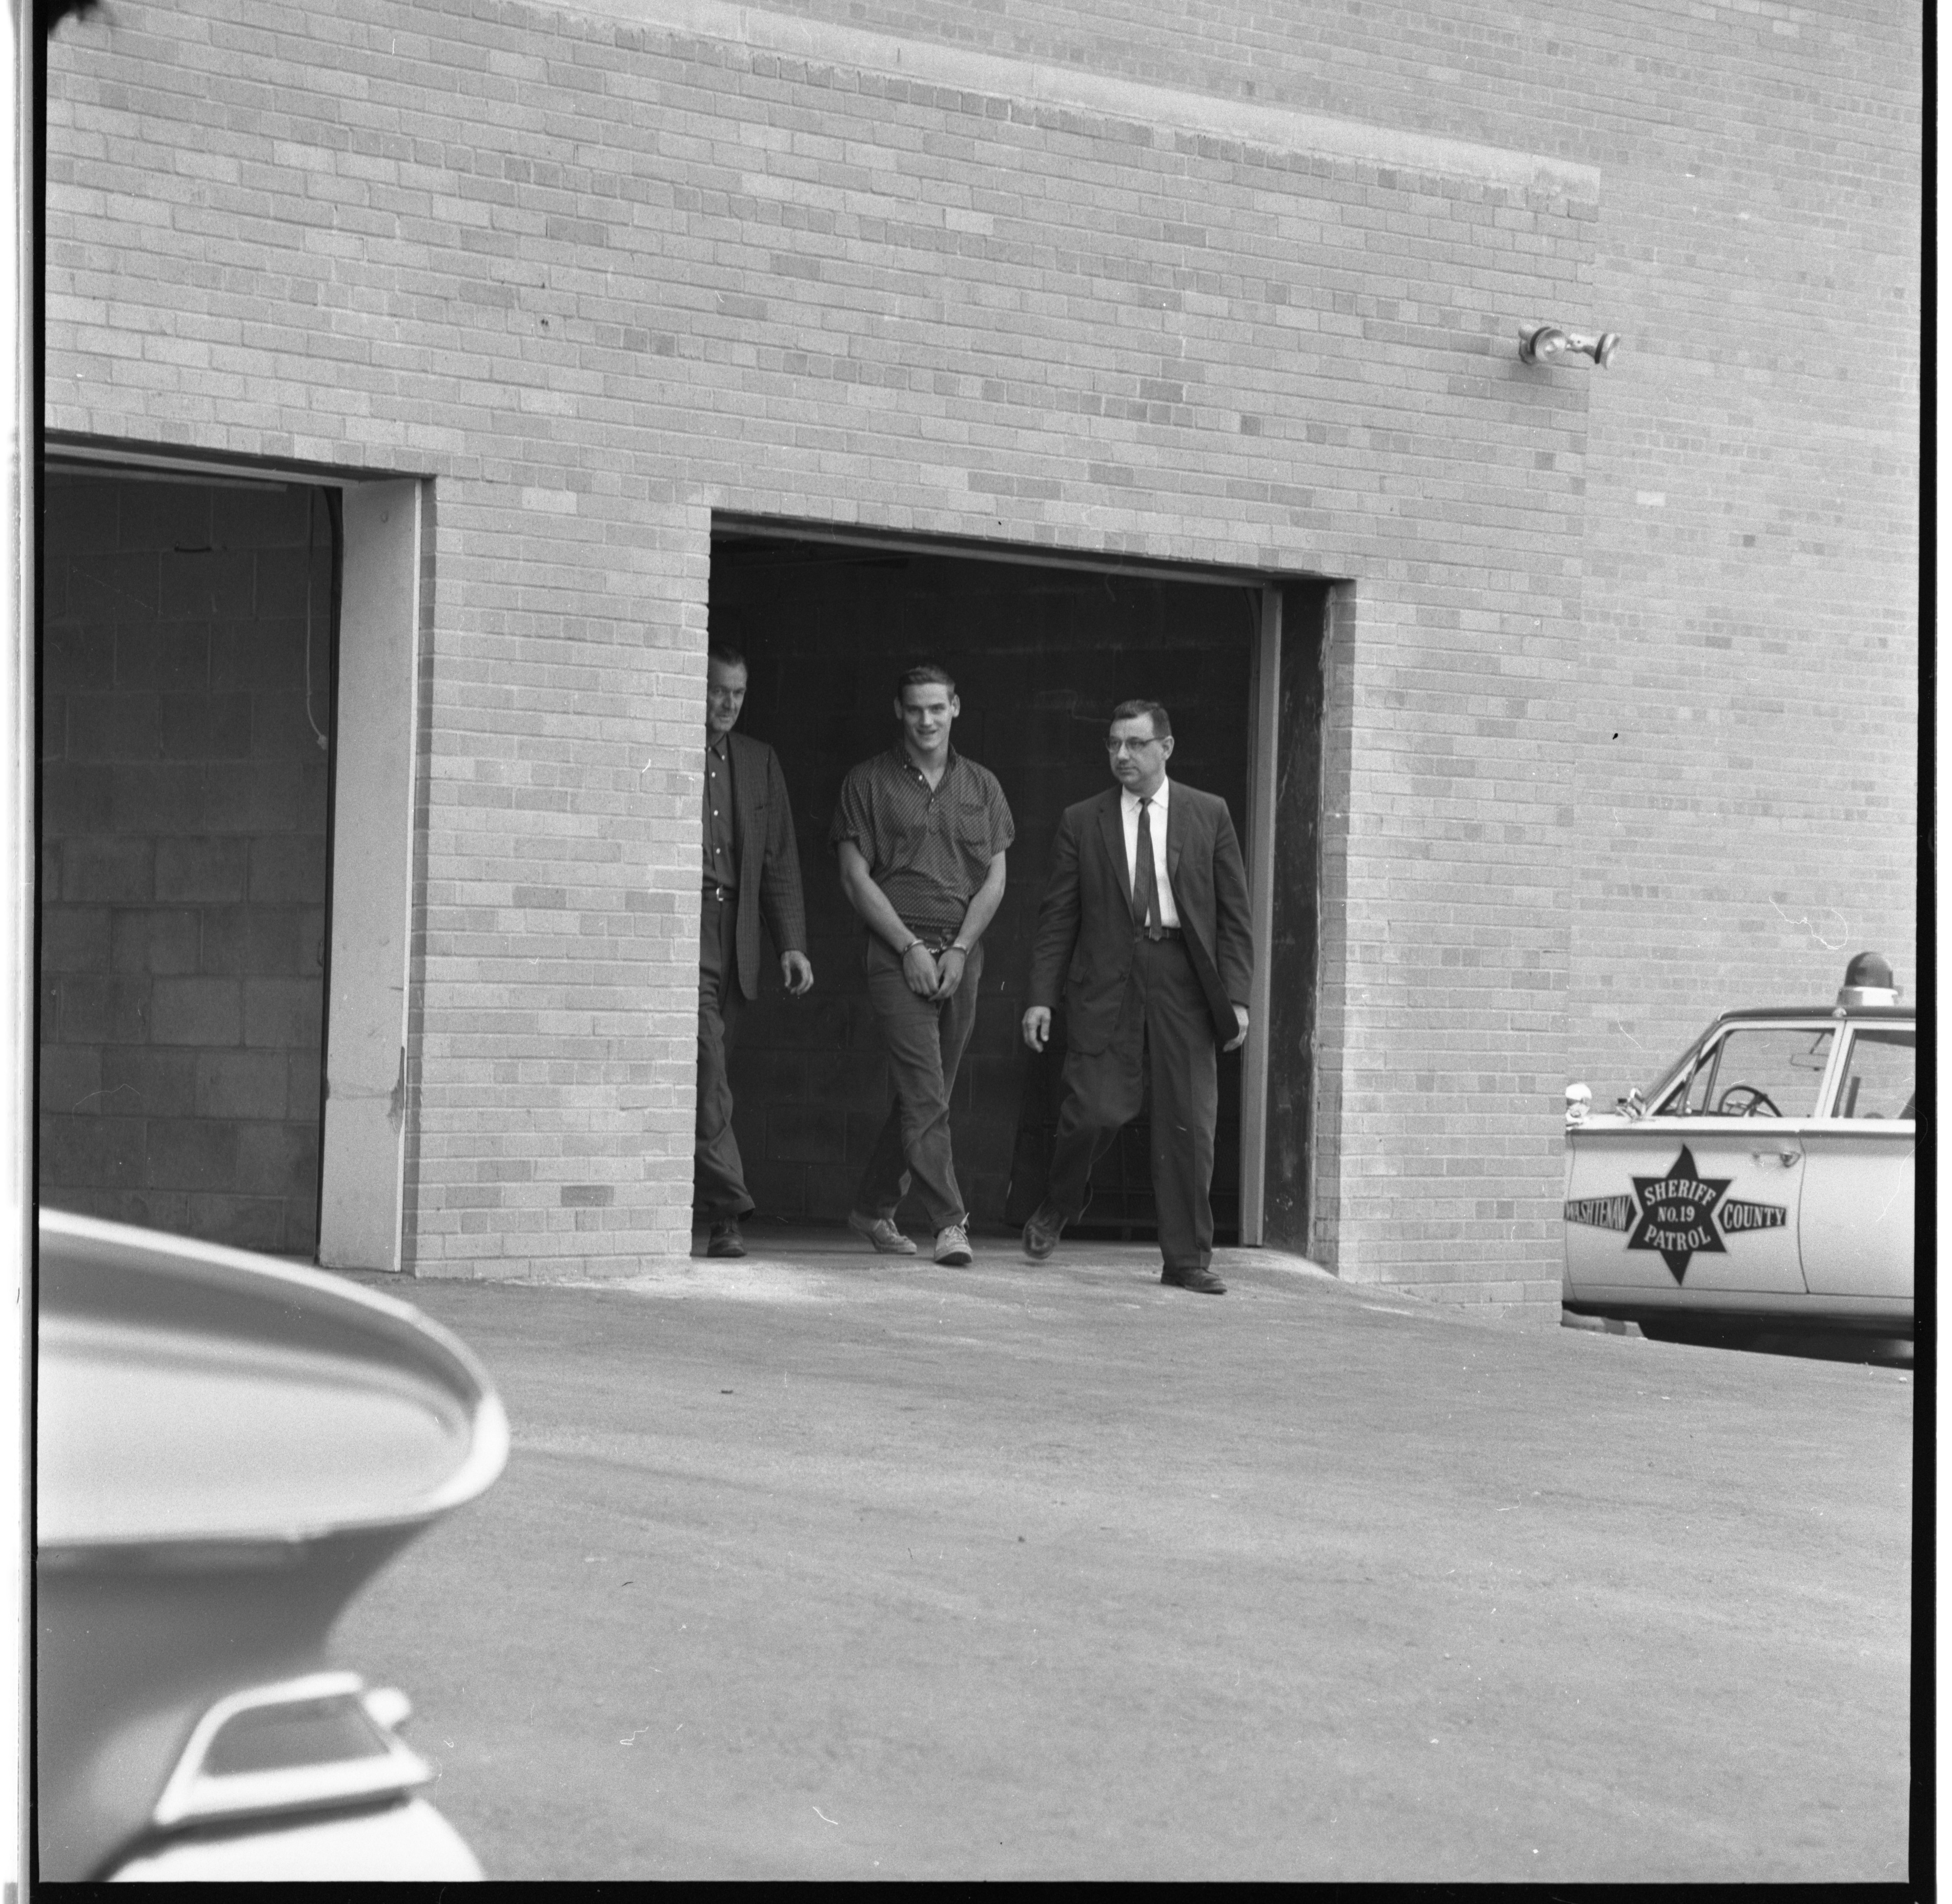 Washtenaw County Sheriff's Detectives Escort Armed Robbery Suspect To Municipal Court, July 1961 image